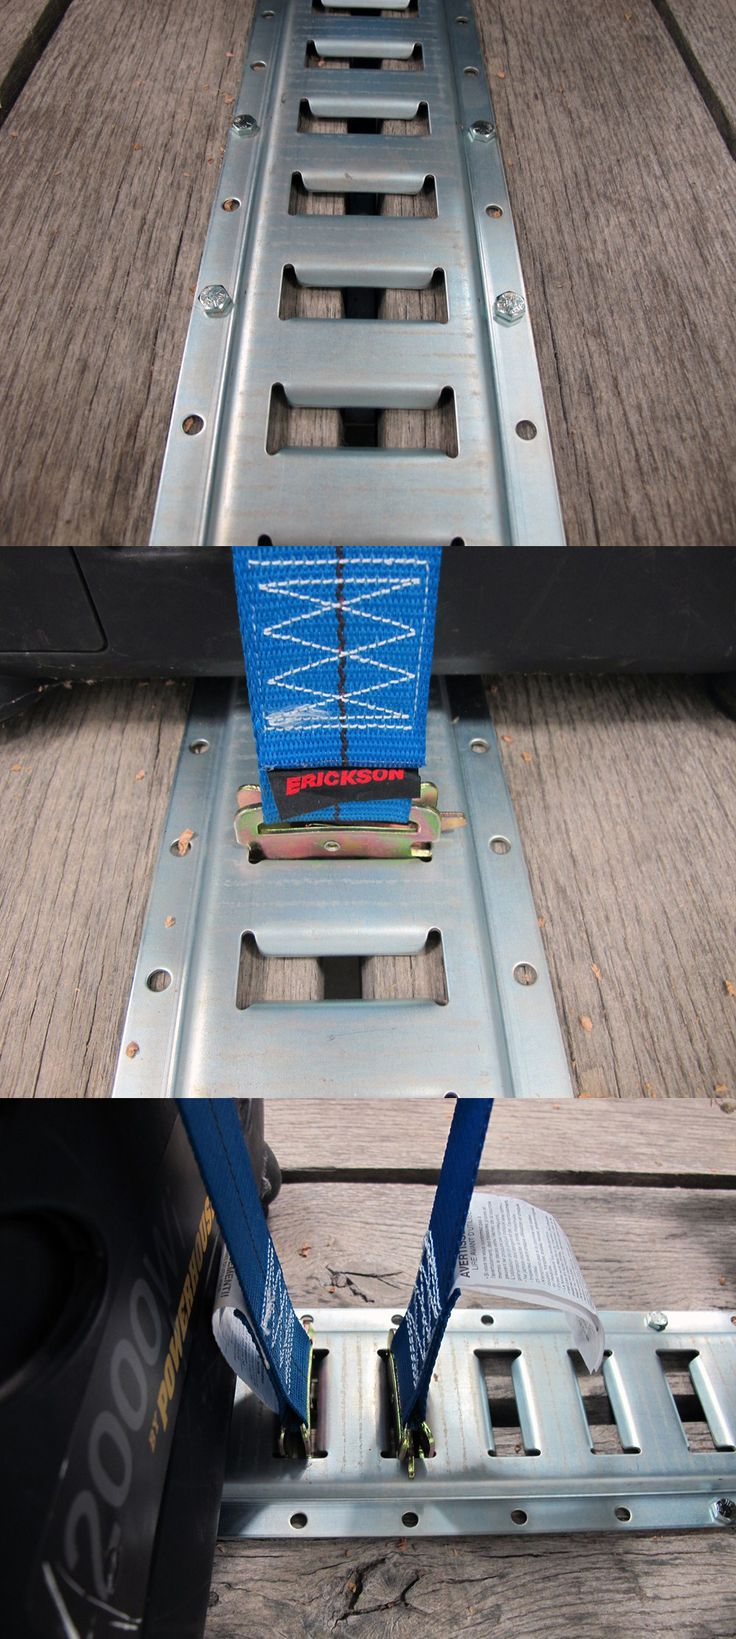 8' long E-Track with horizontal slots is perfect for installation in truck or trailer beds or on enclosed trailer walls. Provides tie down points for organization and securing cargo in your trailer!